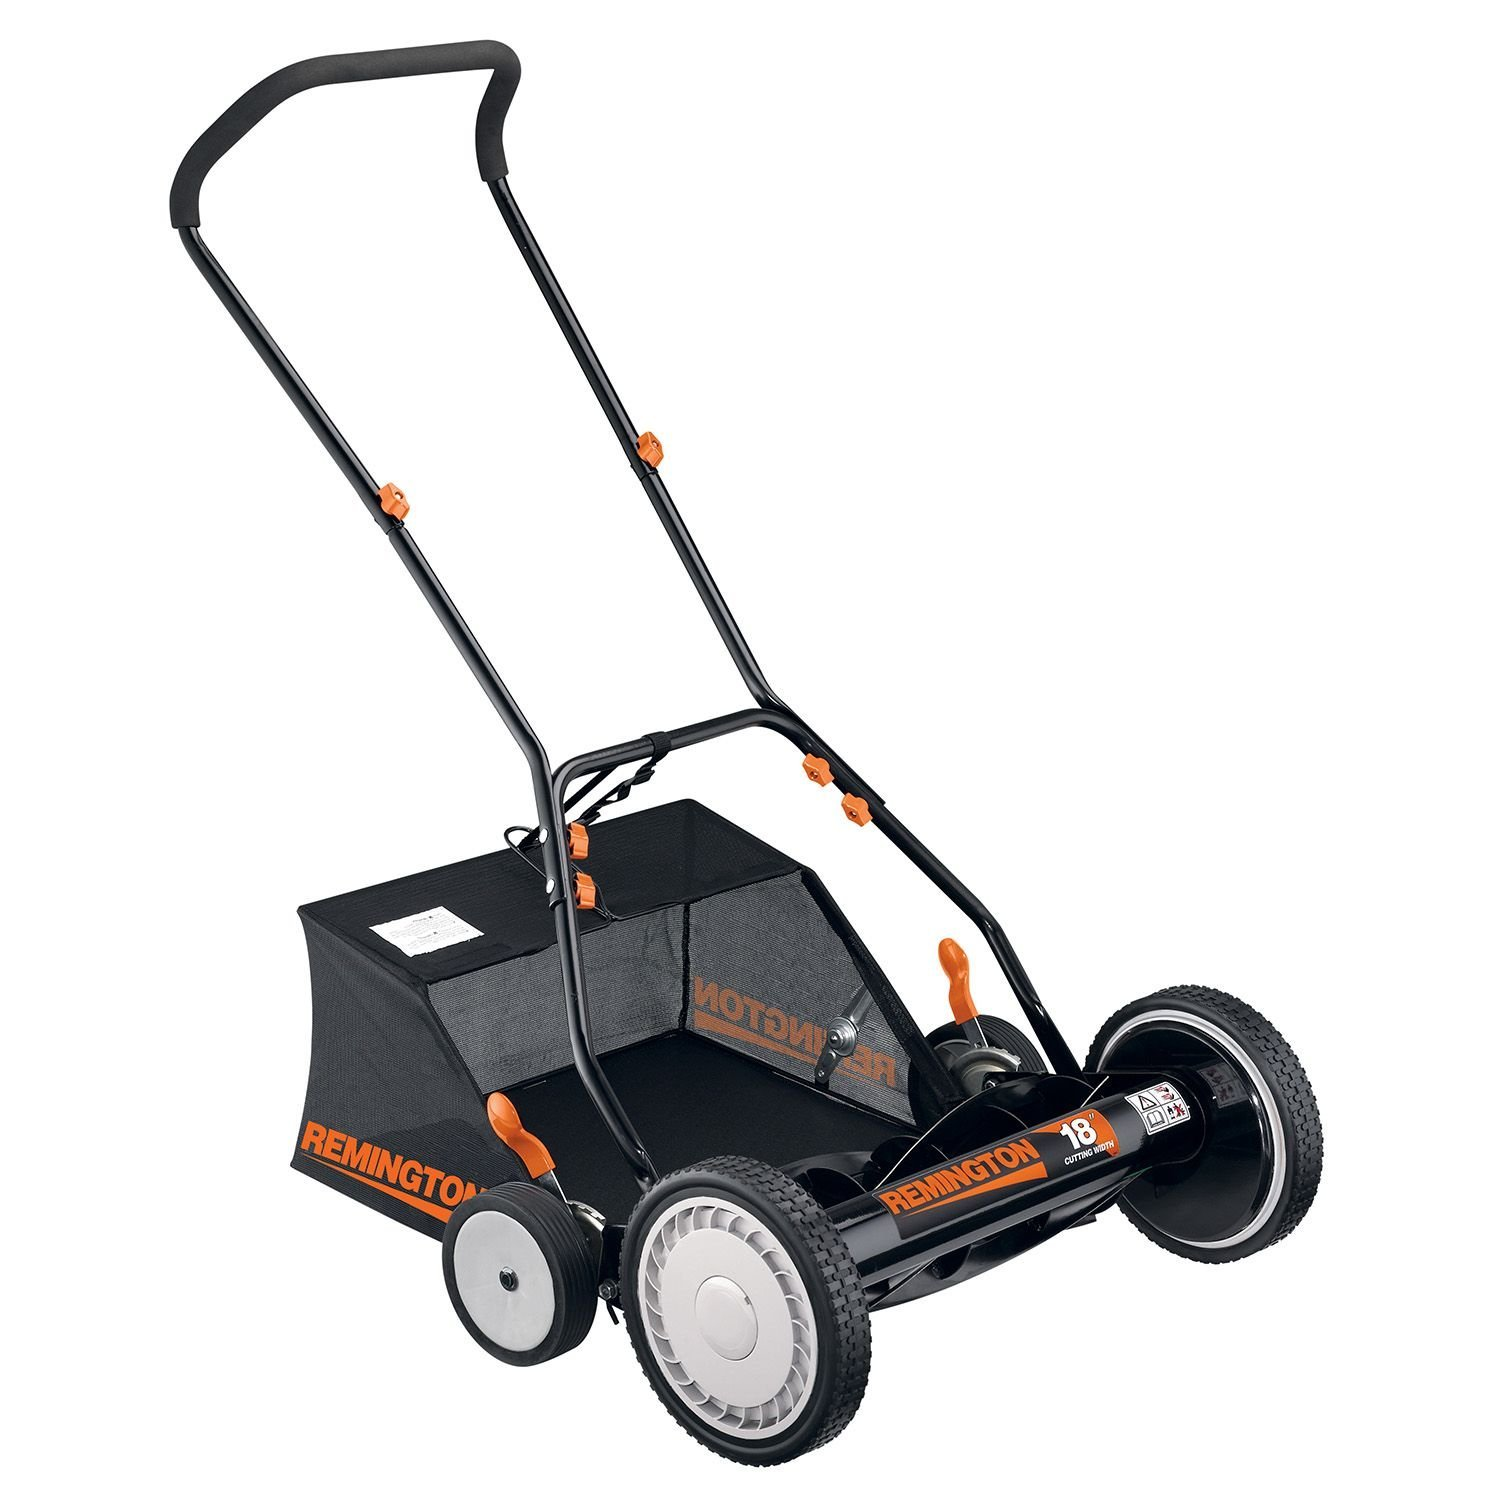 18-Inch Reel Push Mower